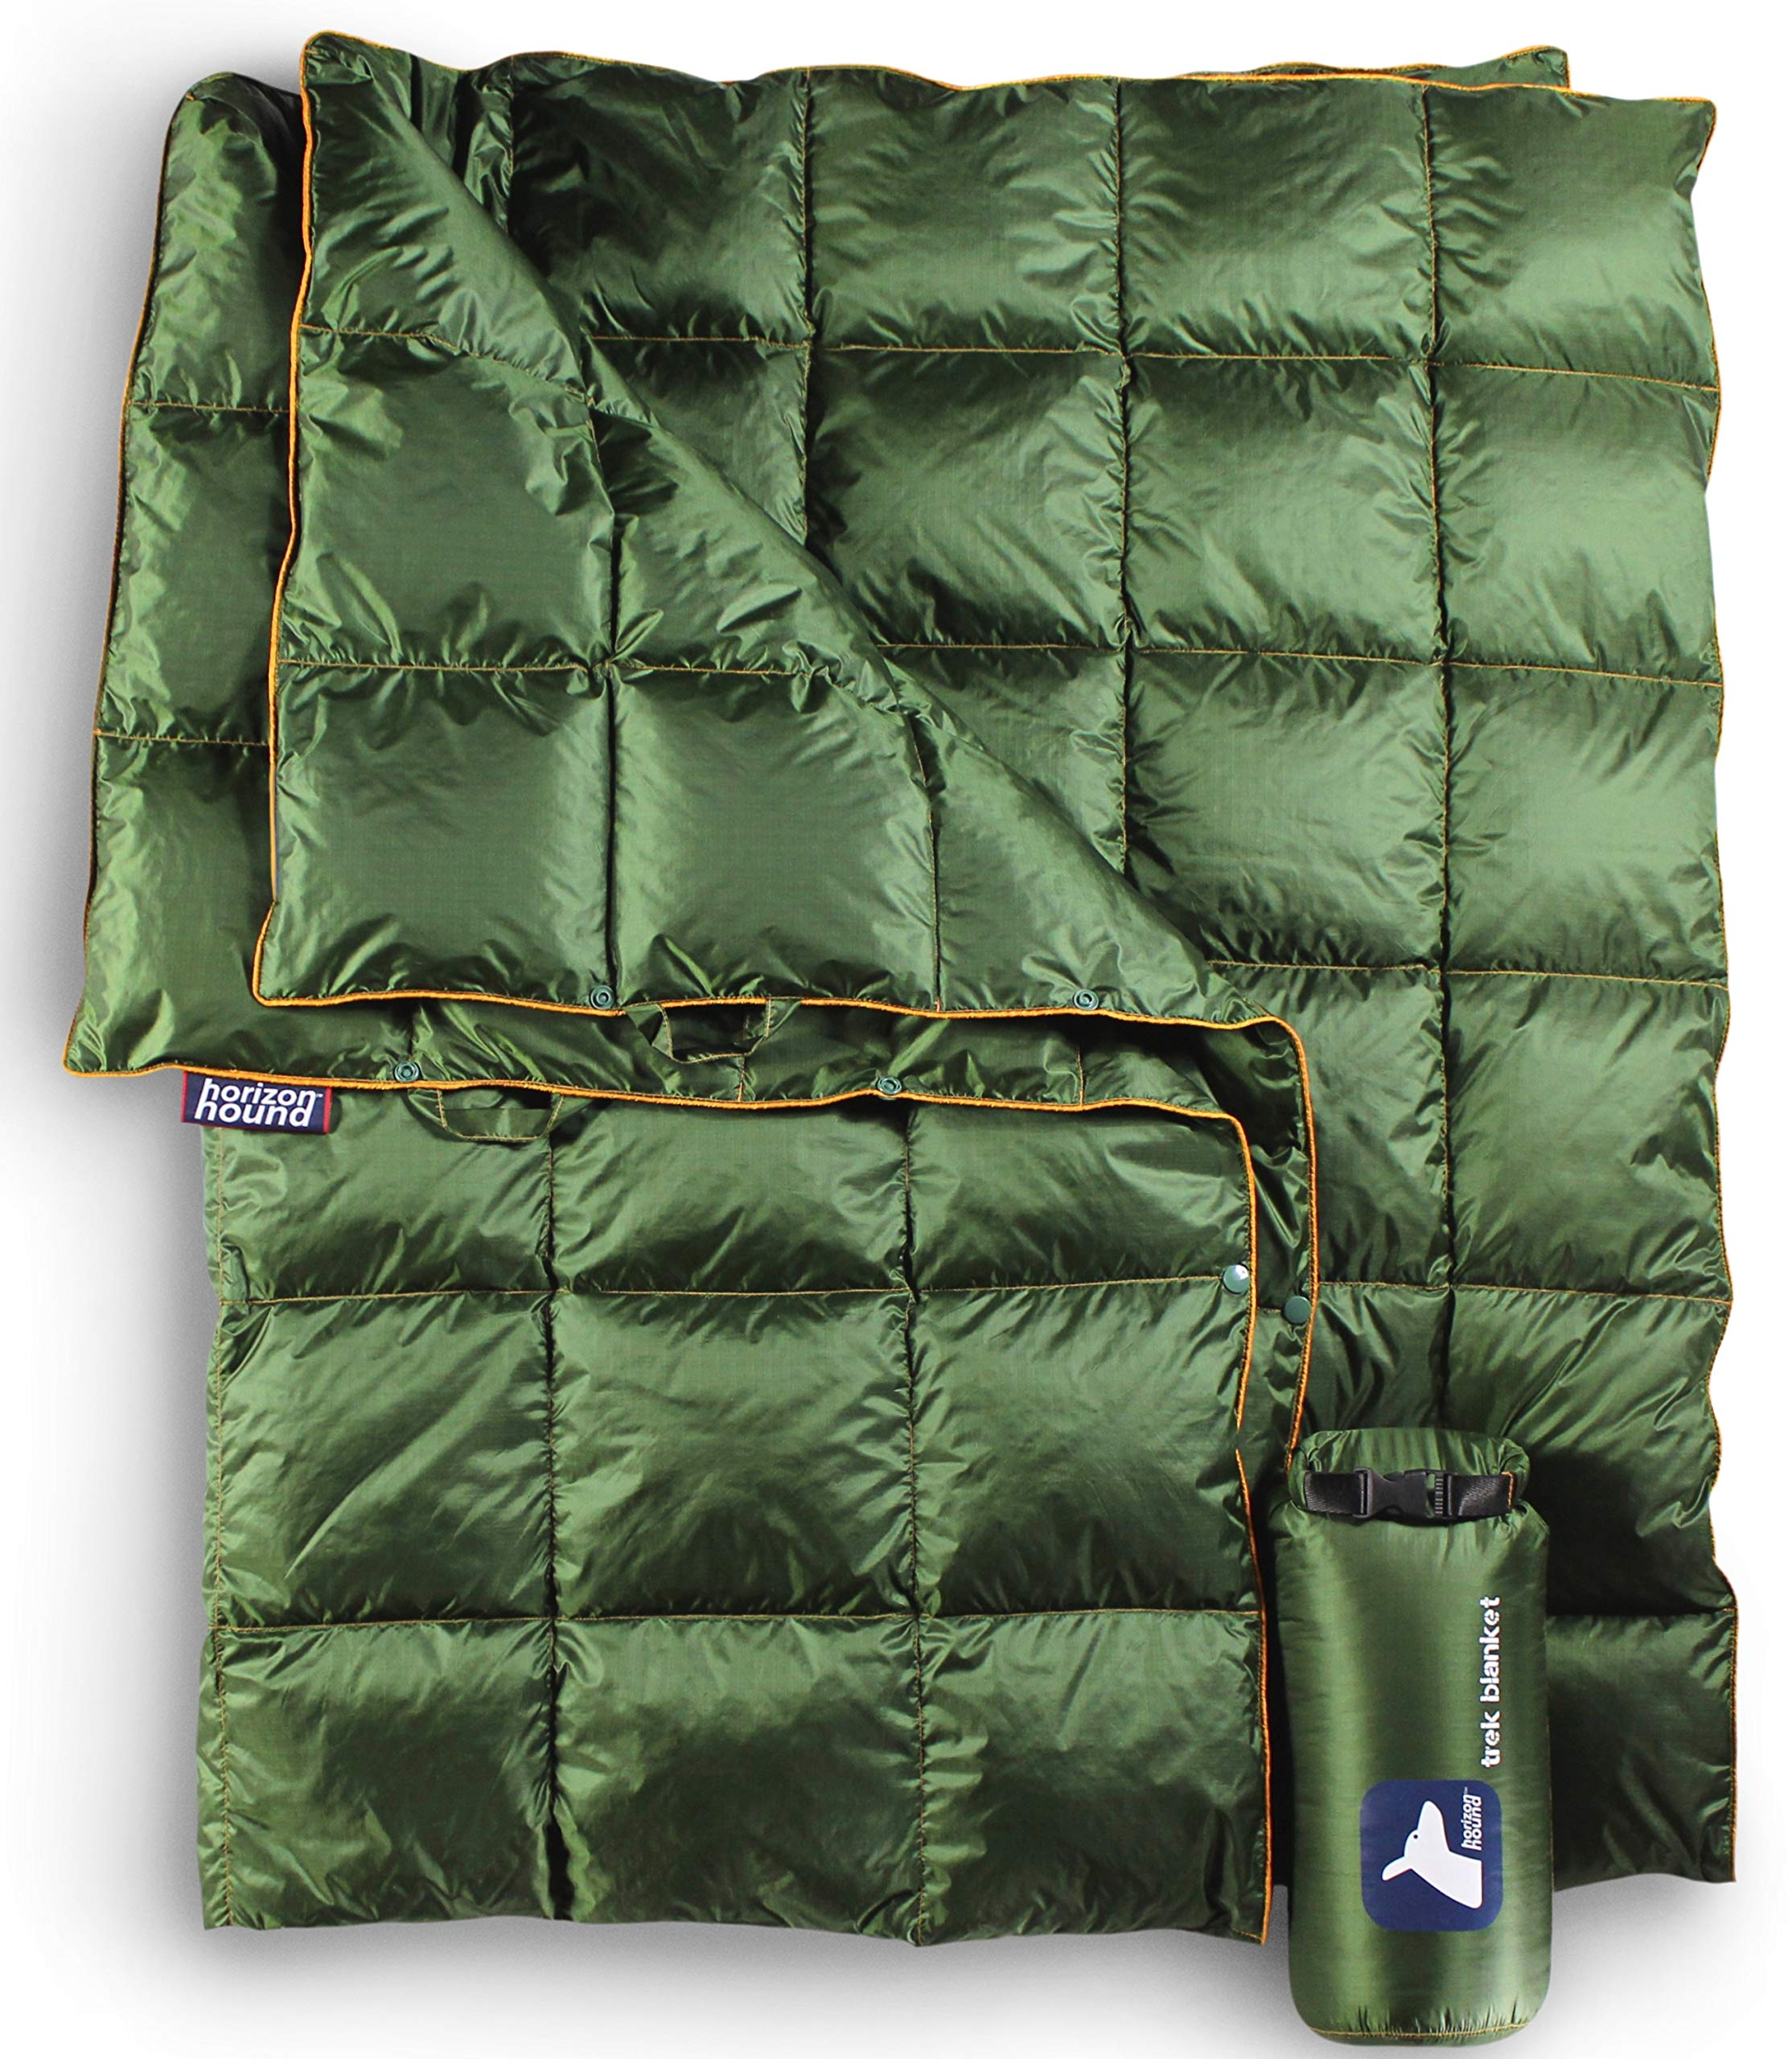 Horizon Hound Down Camping Blanket - Outdoor Lightweight Packable Down Blanket Compact Waterproof and Warm for Camping Hiking Travel - 650 Fill Power by Horizon Hound